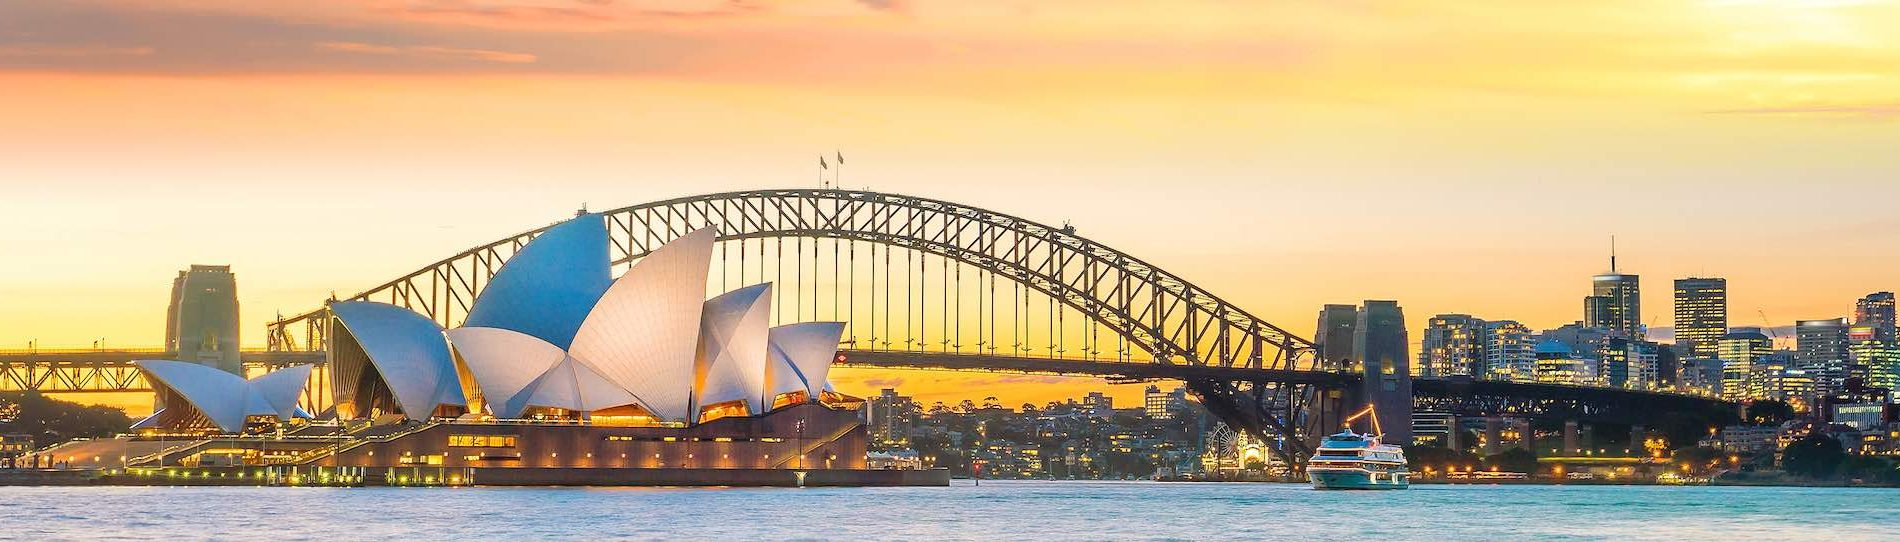 bucks party destination sydney sun setting over sydney harbour bridge and sydney opera house